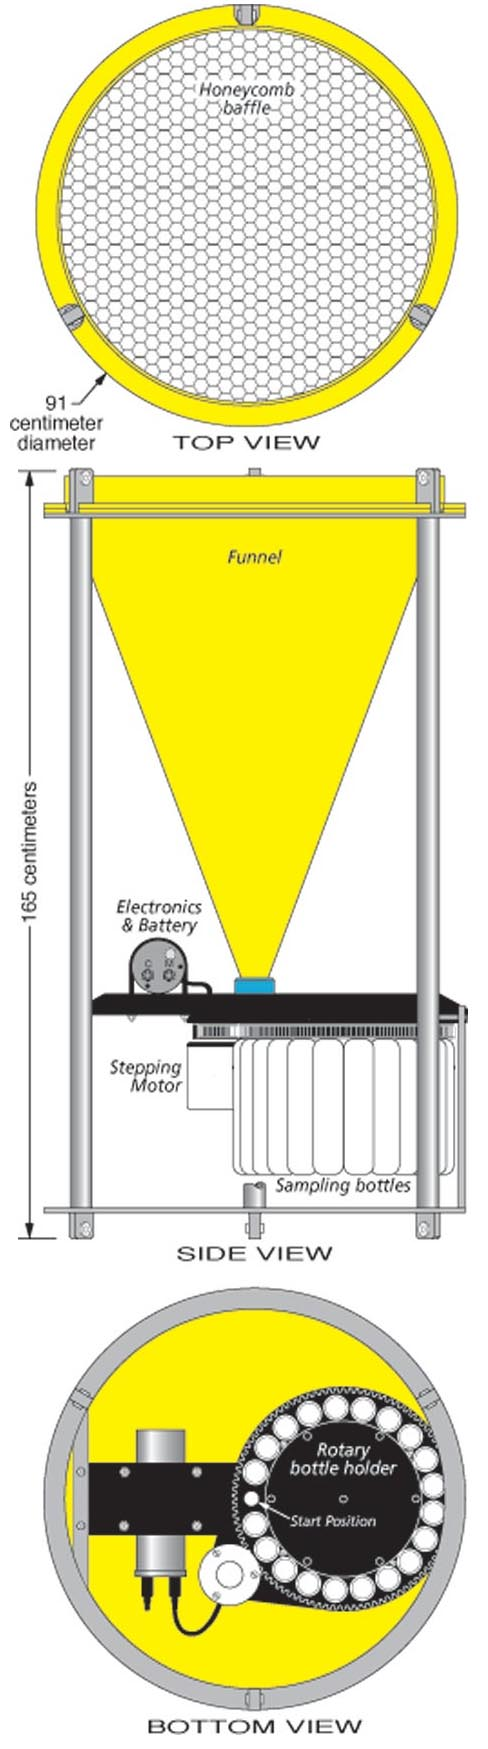 Diagram of an automated time-series sediment trap used in the Arabian Sea. A baffle at top keeps out large objects that would clog the funnel. The circular tray holds collection vials. On a preprogrammed schedule (every 5 days to 1 month), the instrument seals one vial and rotates the next one into place. Scientists retrieve the samples up to a year later to analyze the collected sediment. (courtesy Oceanus magazine, WHOI)